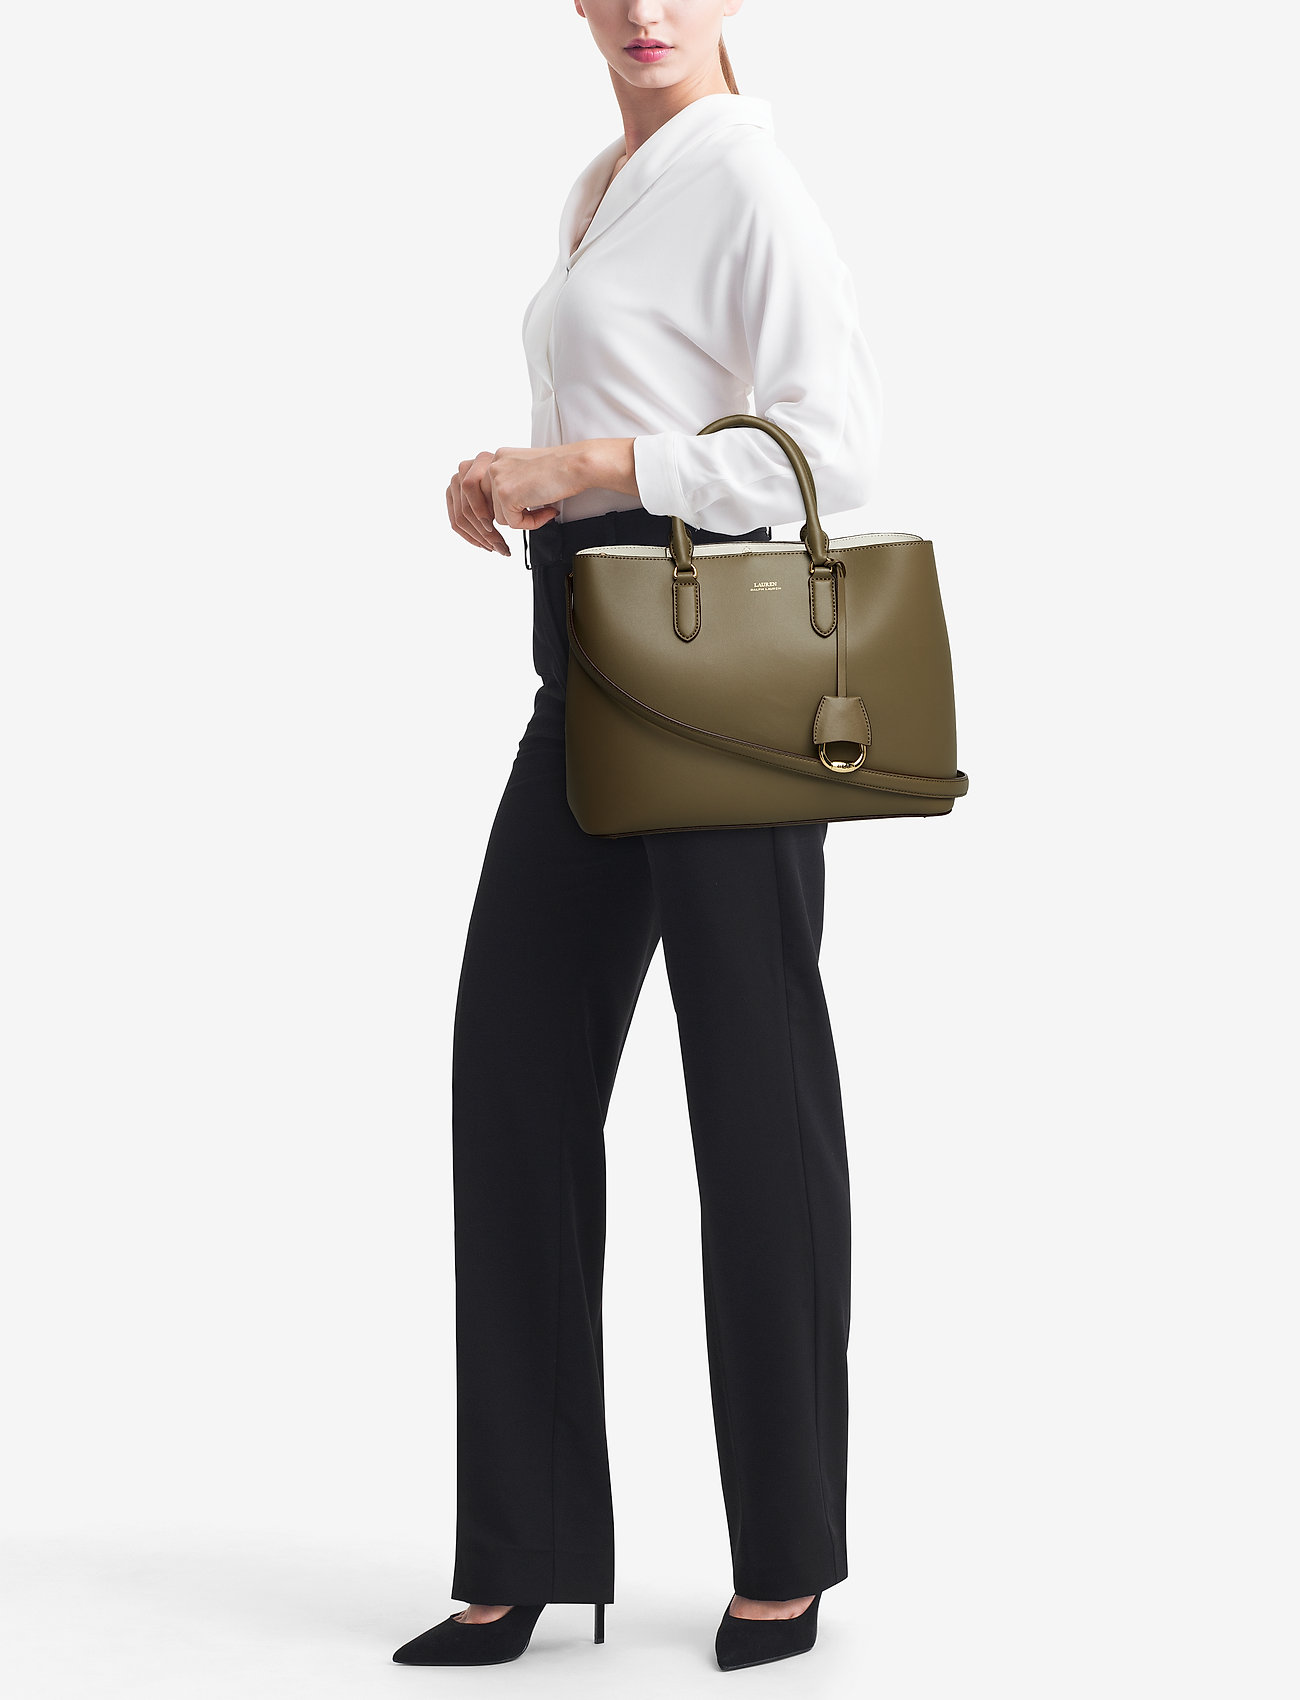 Lauren Ralph Lauren Leather Marcy Satchel - SAGE/VANILLA